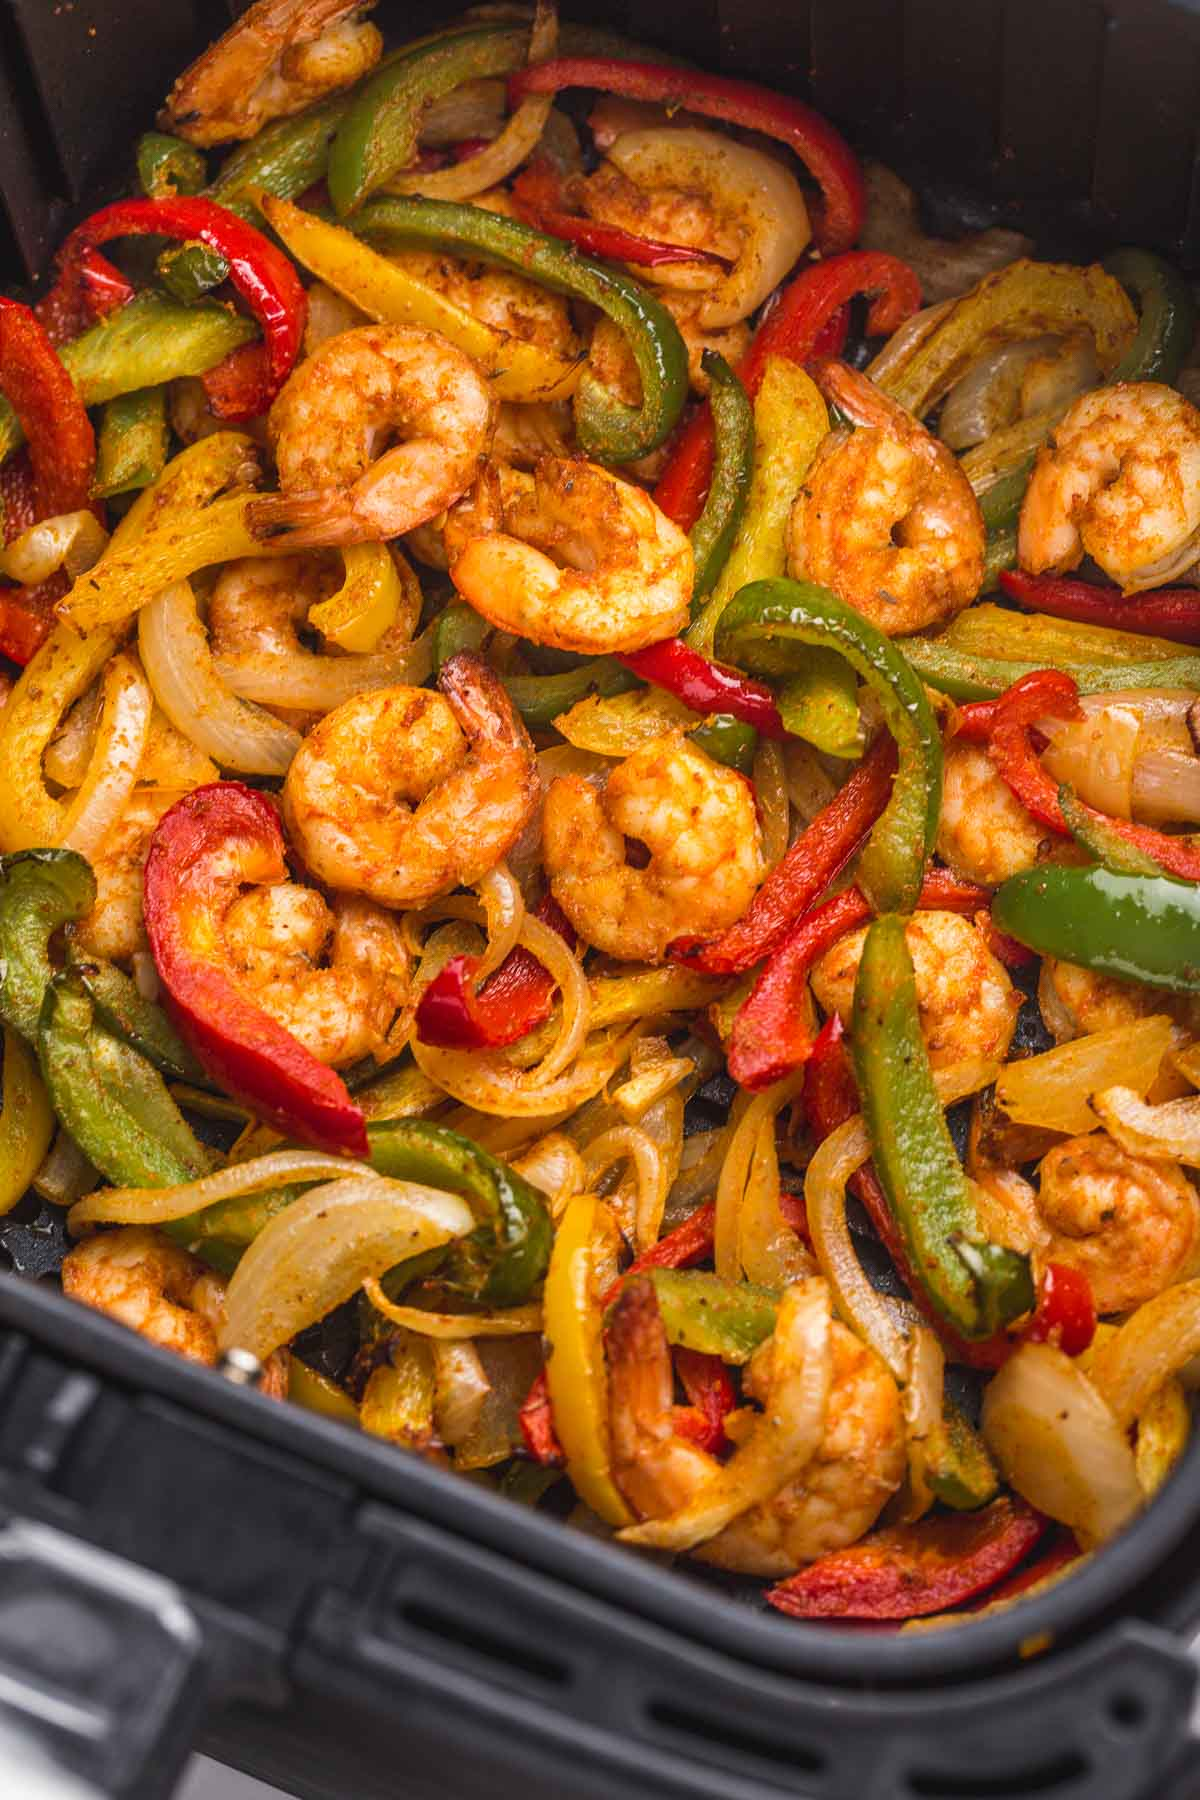 Shrimp fajitas in the Air Fryer basket.